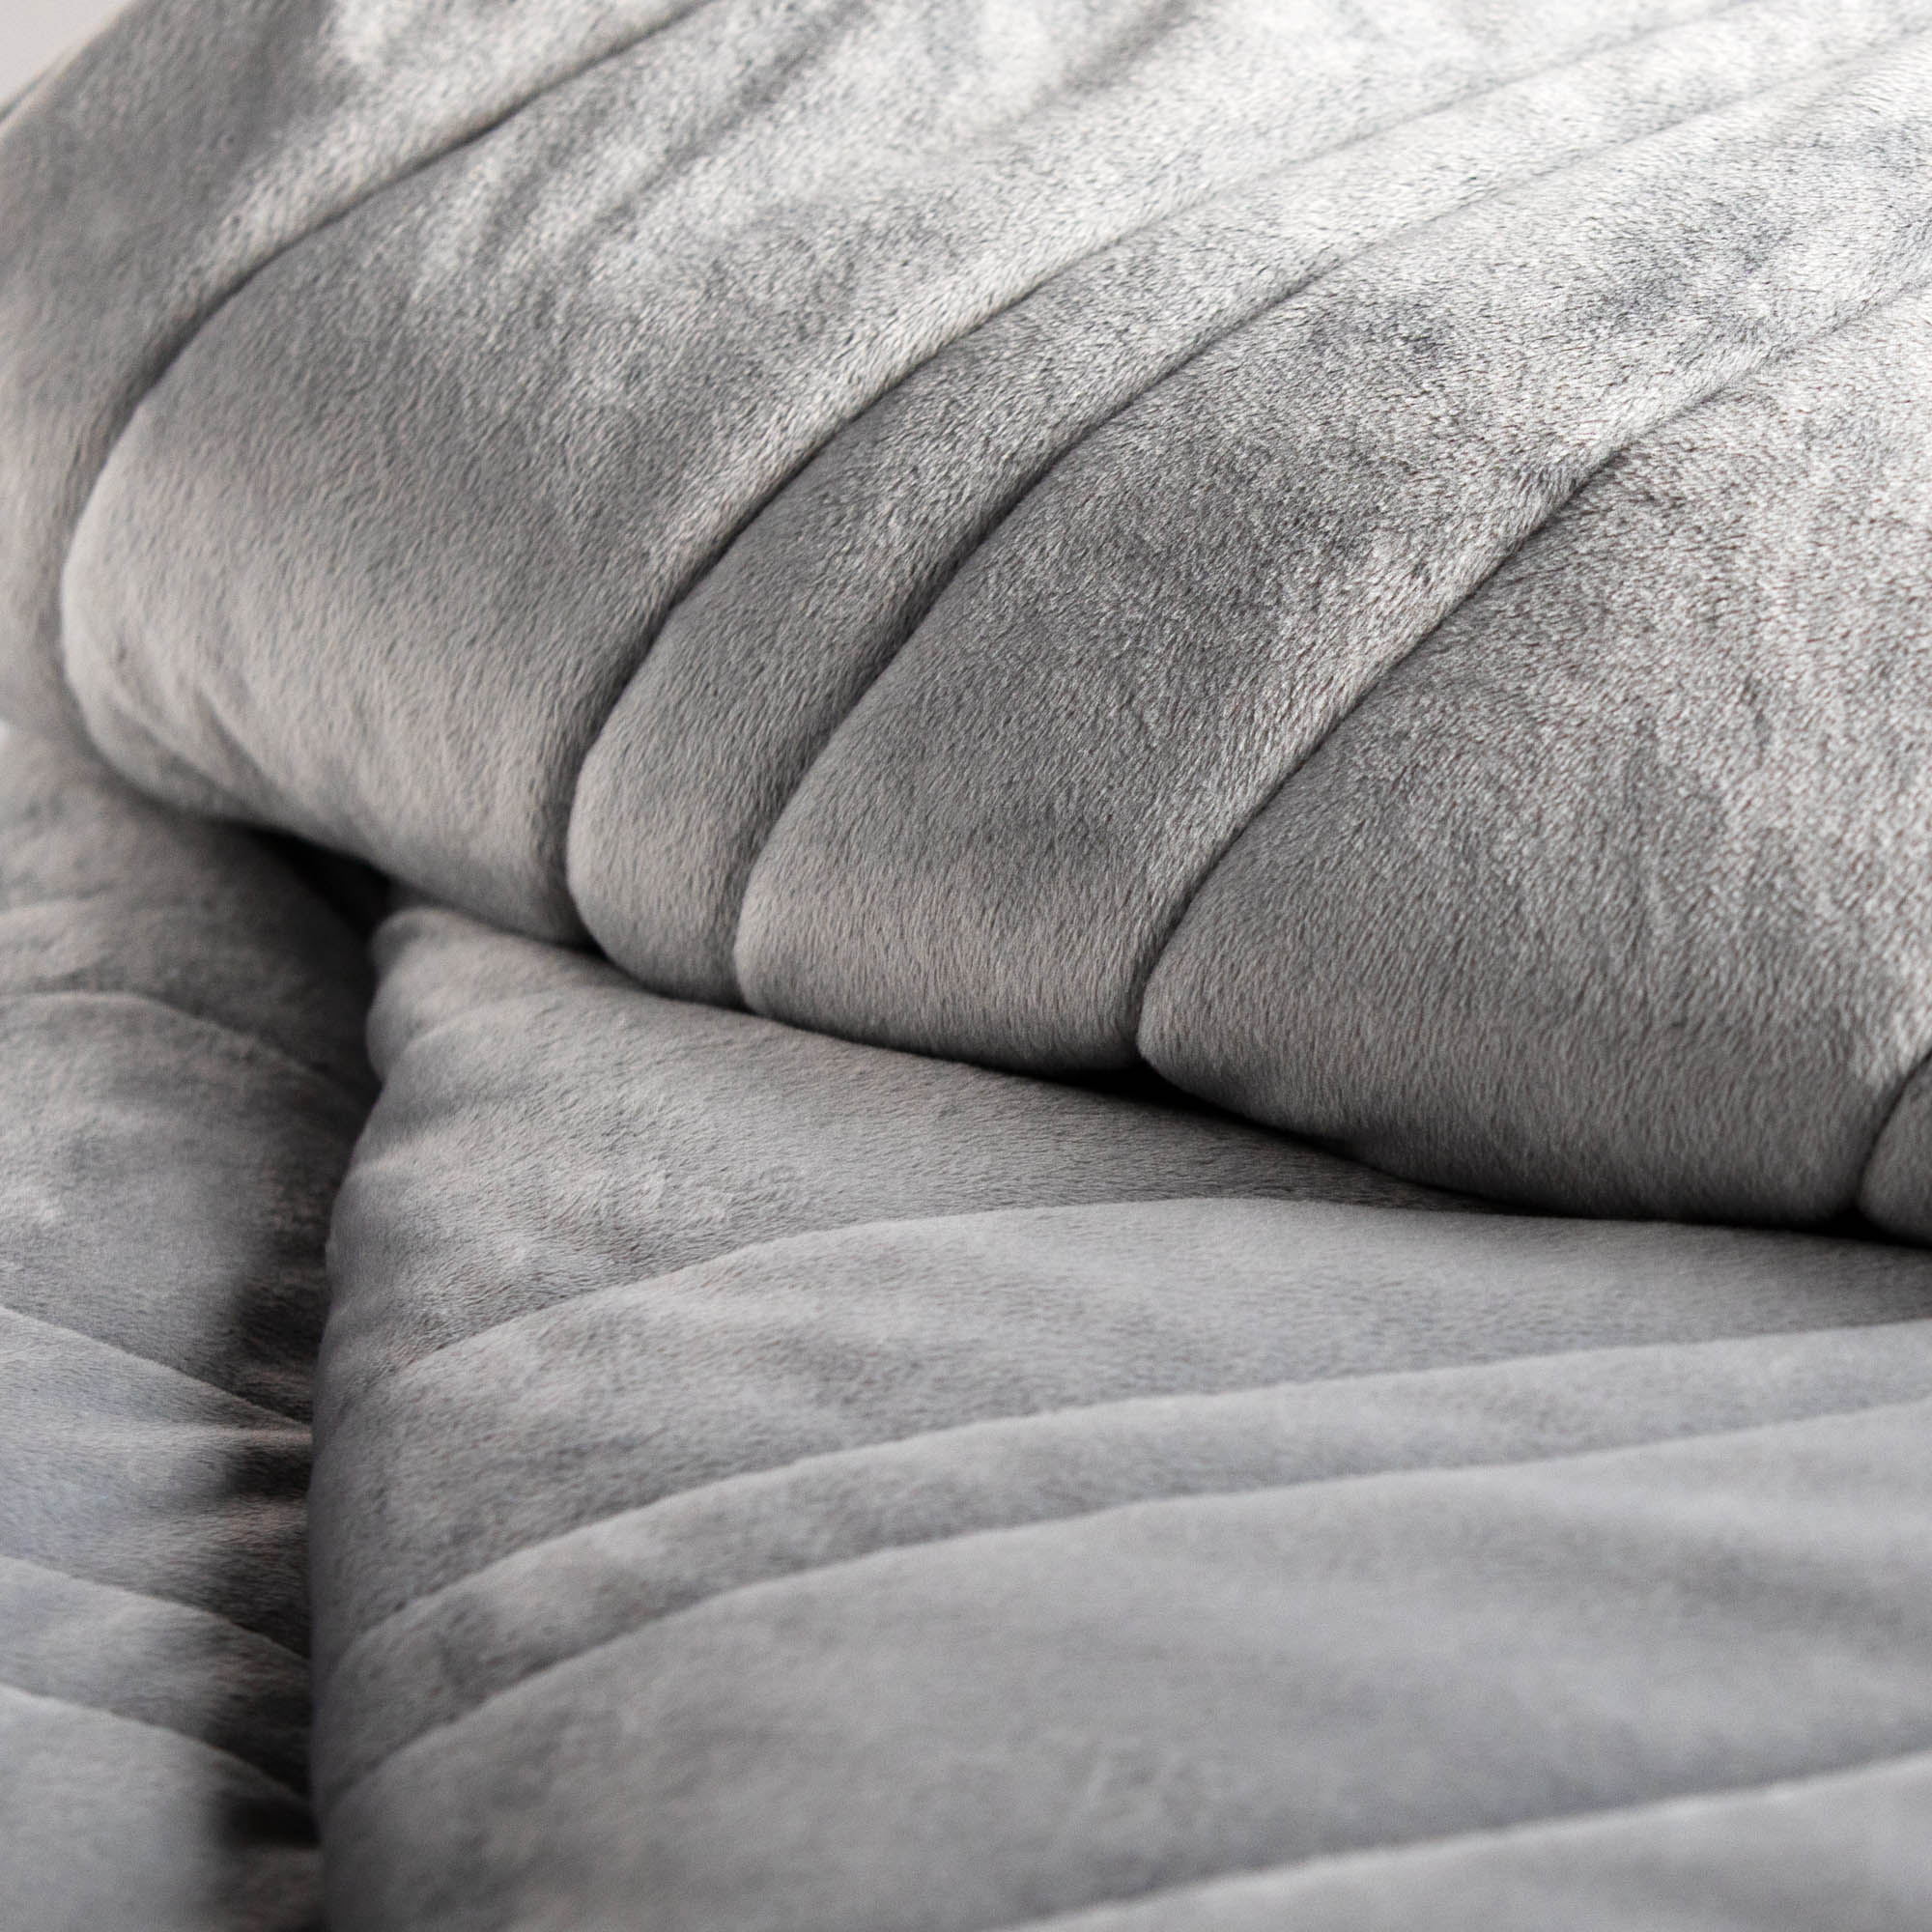 Anchor 15lb Weighted Blanket in Ash Malouf